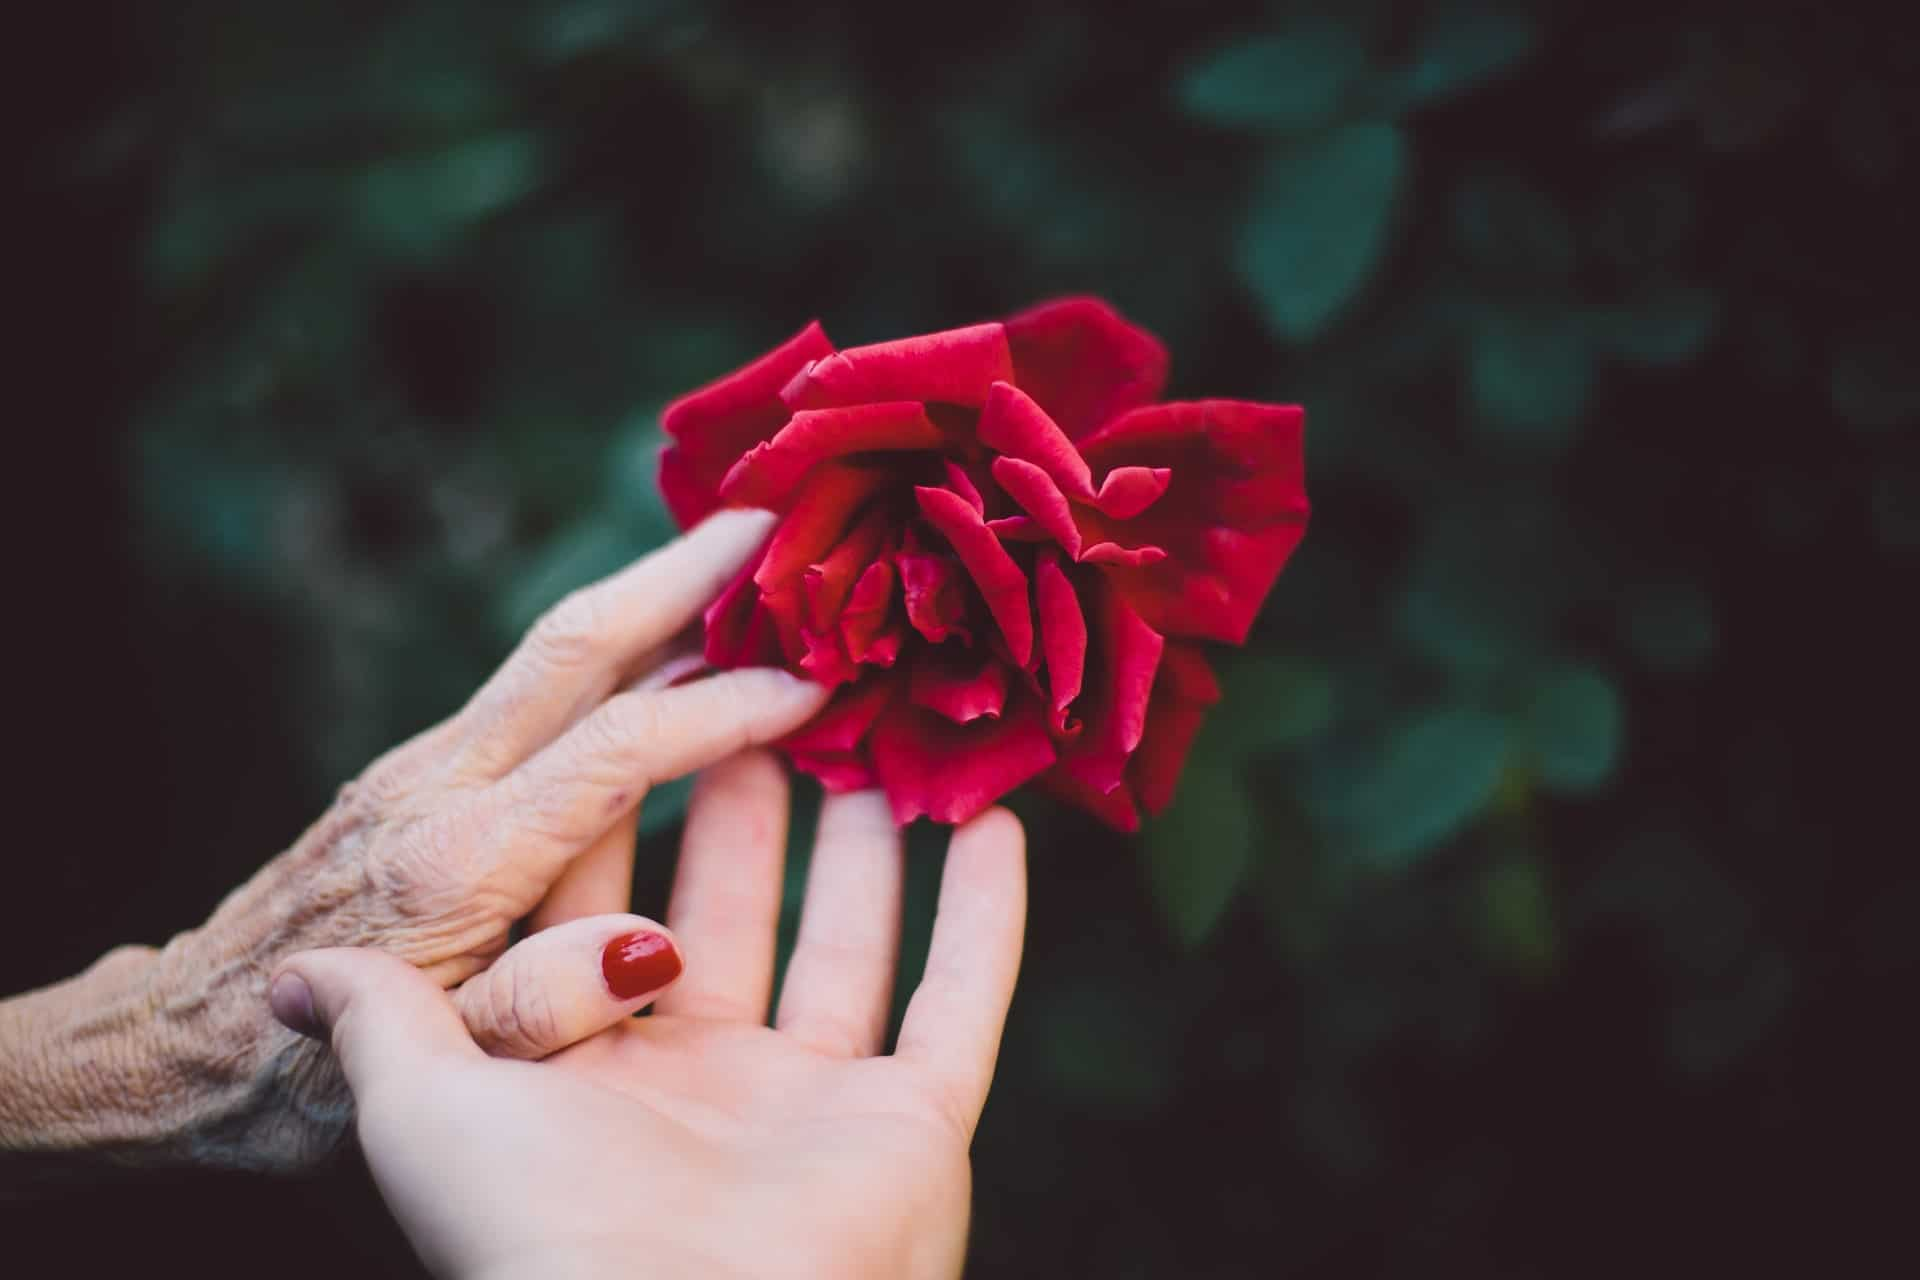 Two hands touching a red rose